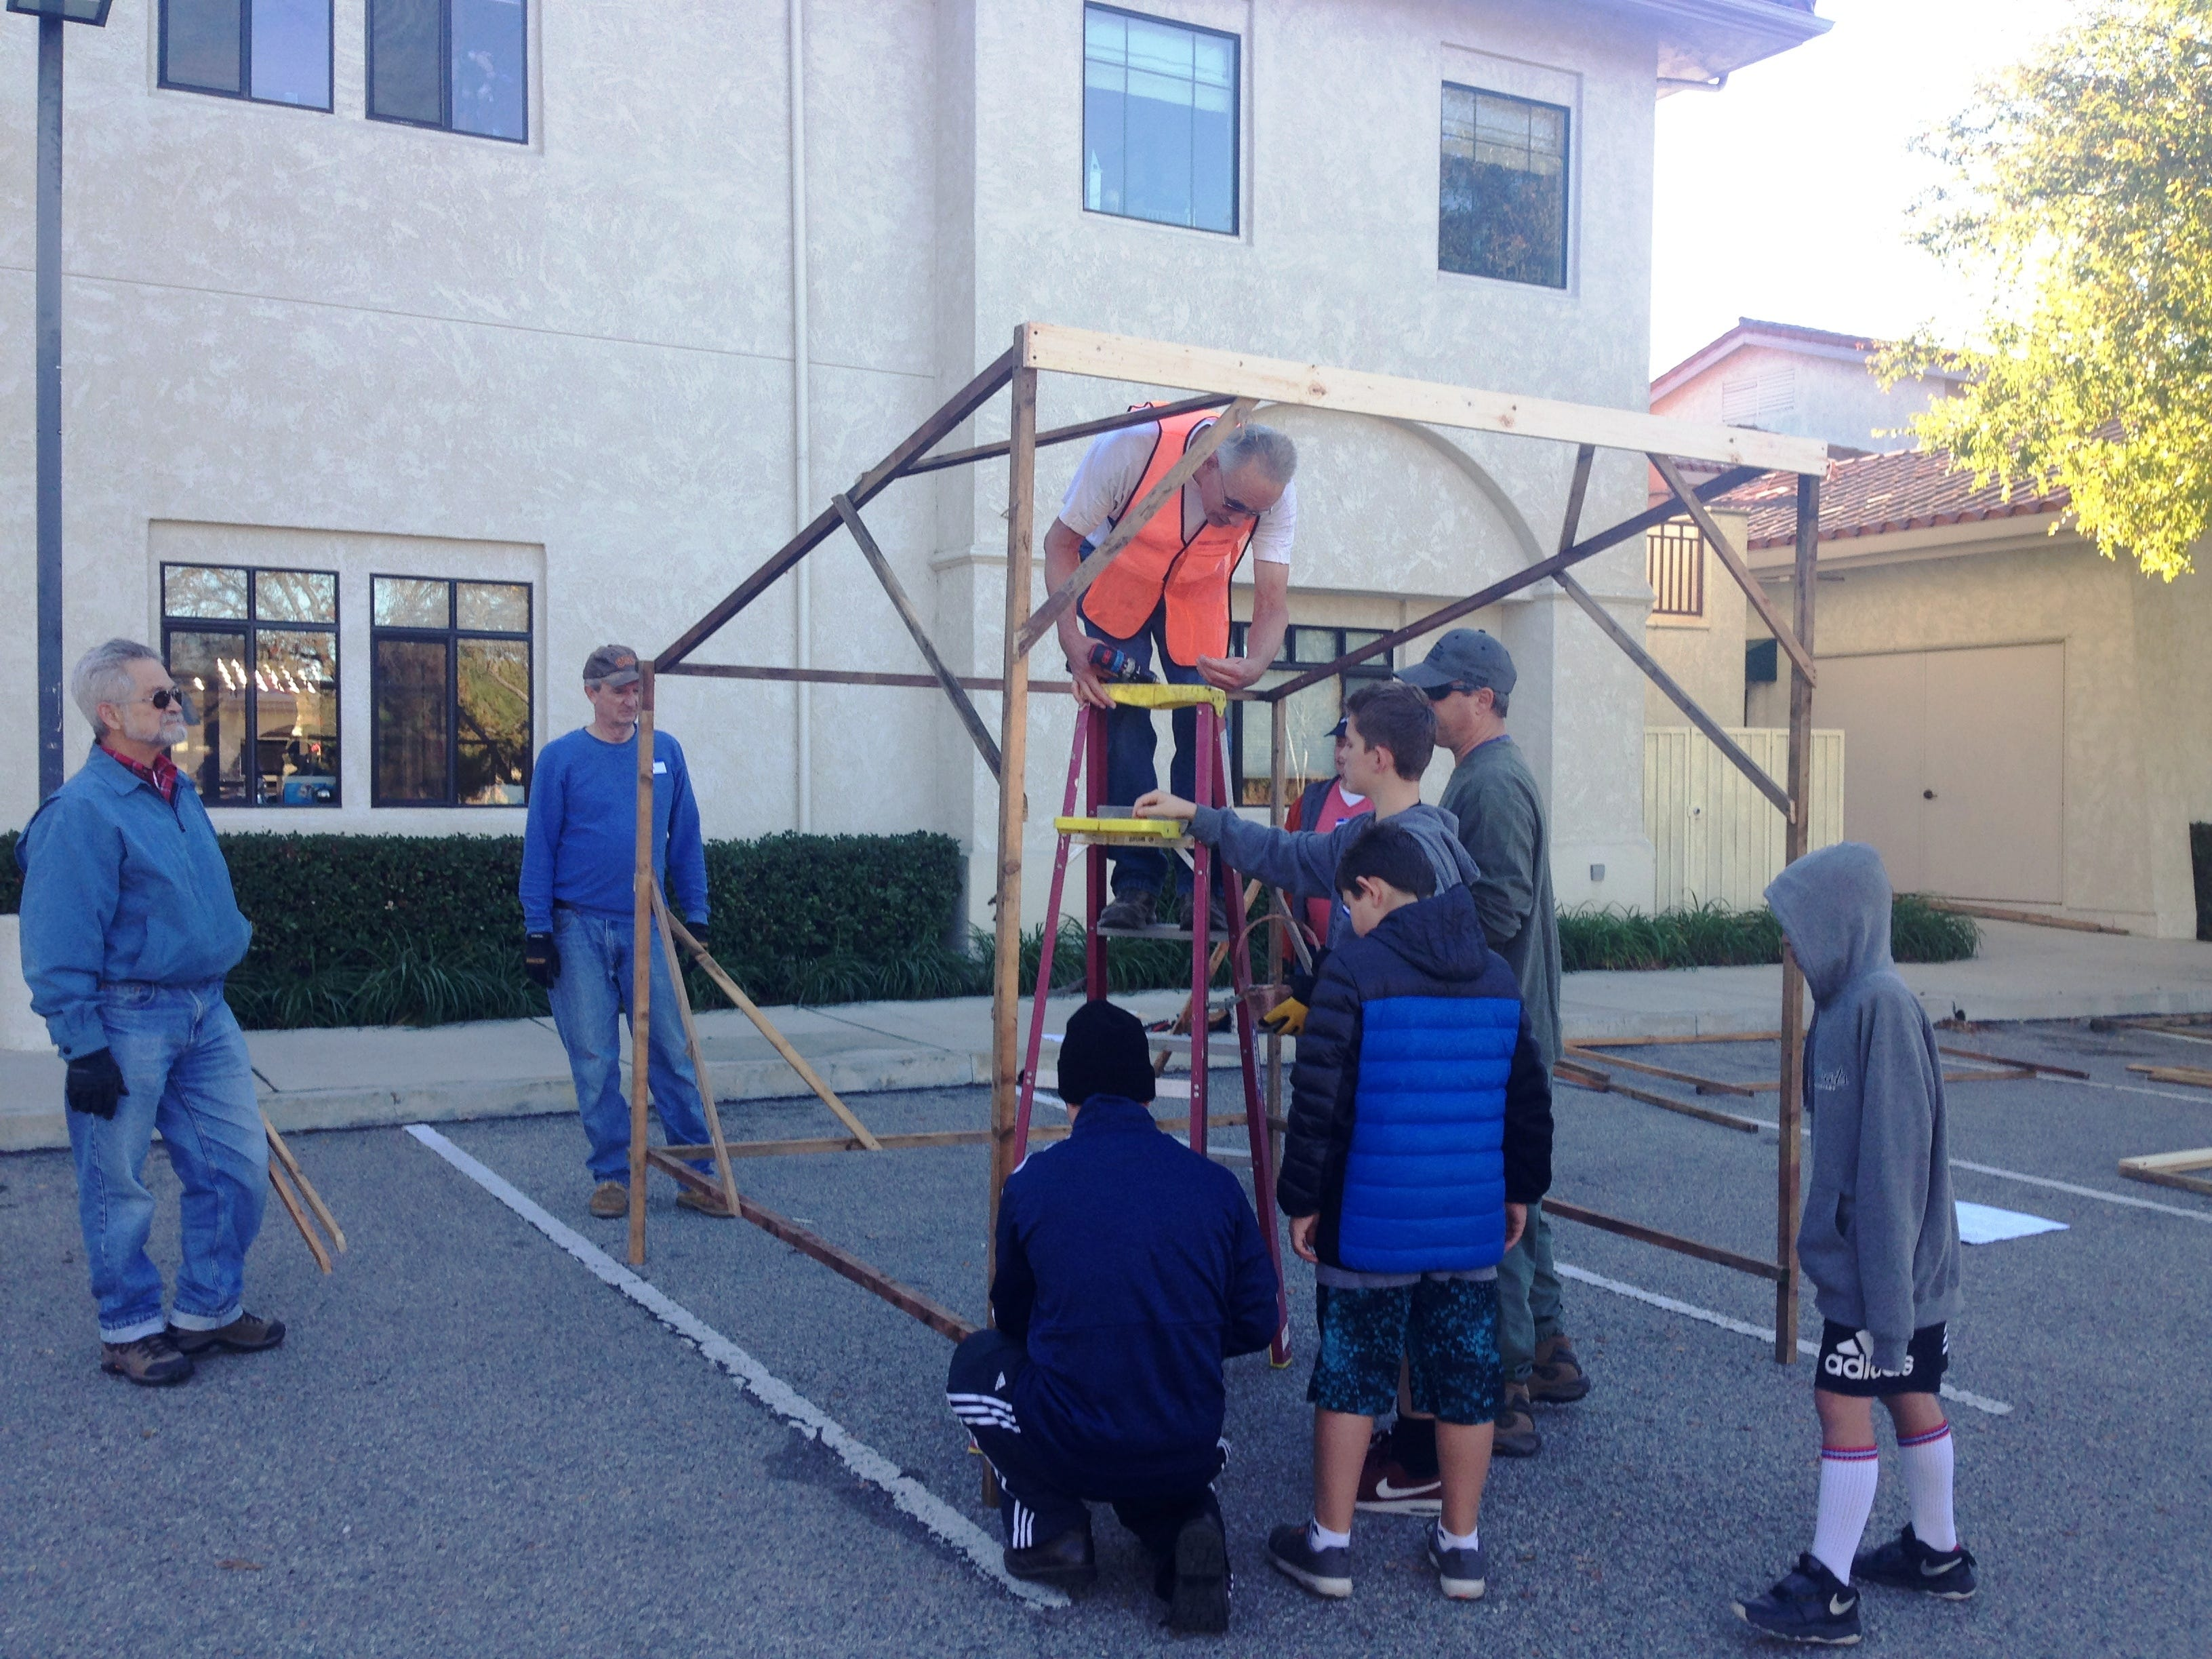 Volunteers build sets for the Bethlehem Experience, a drive-through Nativity scene at Westminster Presbyterian Church in Westlake Village. This free event will take place from 5-9 p.m. Friday and Saturday.